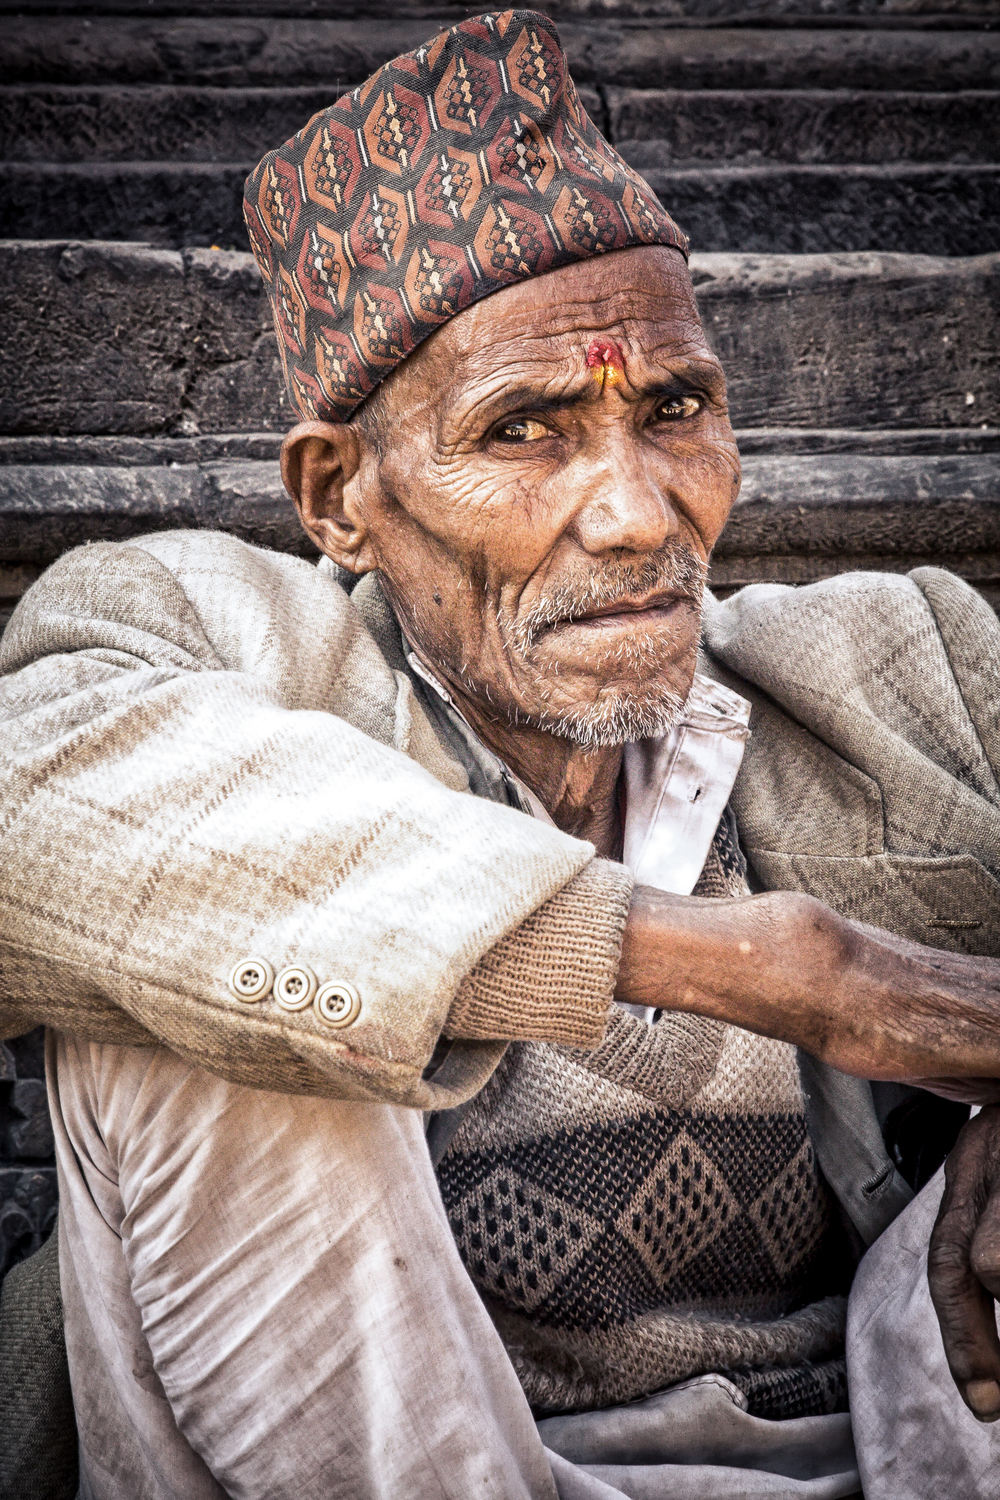 - A Nepali man taking an afternoon break in Patan Square just outside of Kathmandu, Nepal.